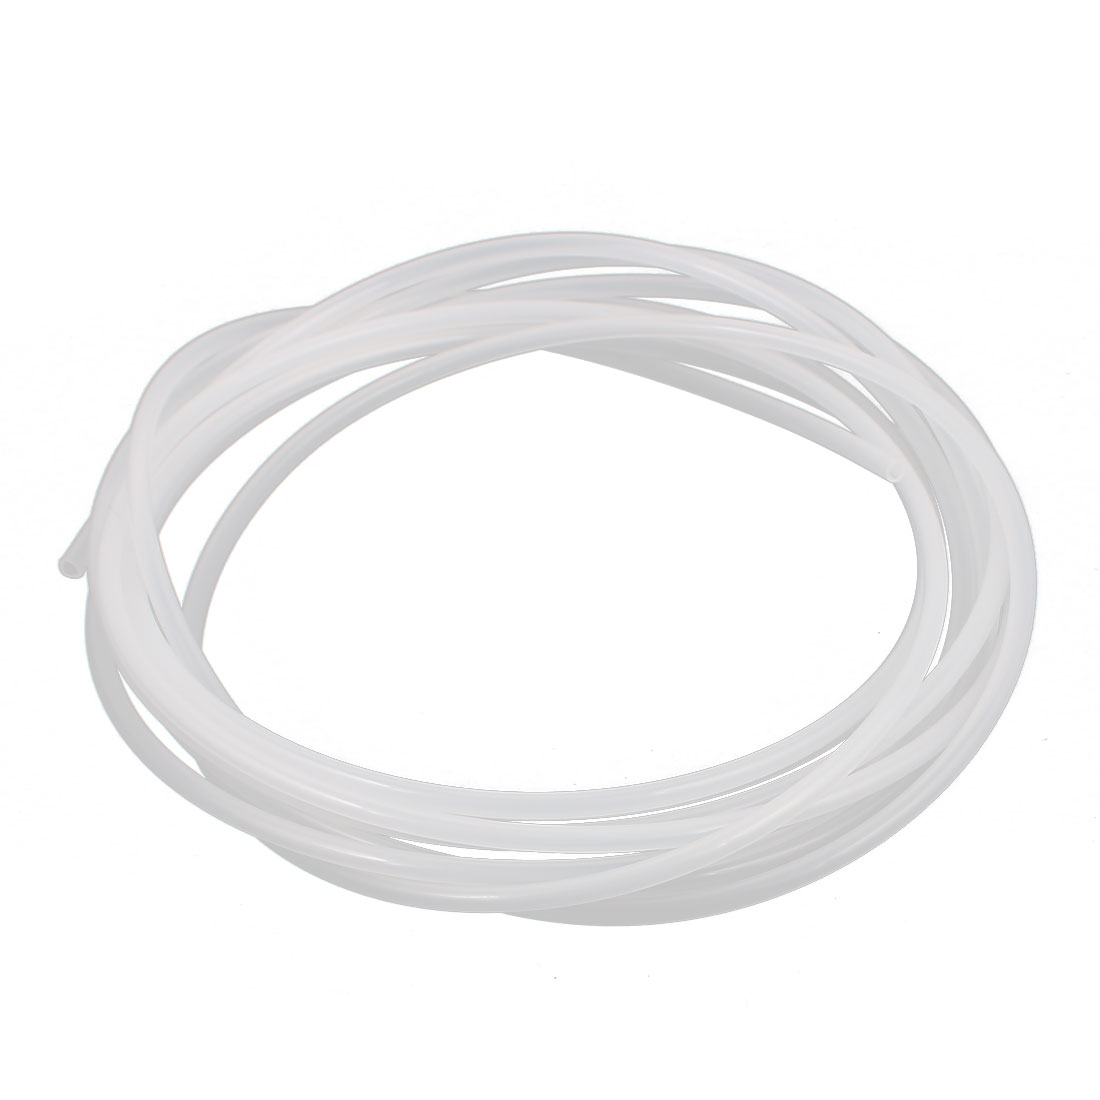 4mm x 2mm Polyethylene PE Gas Water Oil Tube Pipe Hose 3.5M Length